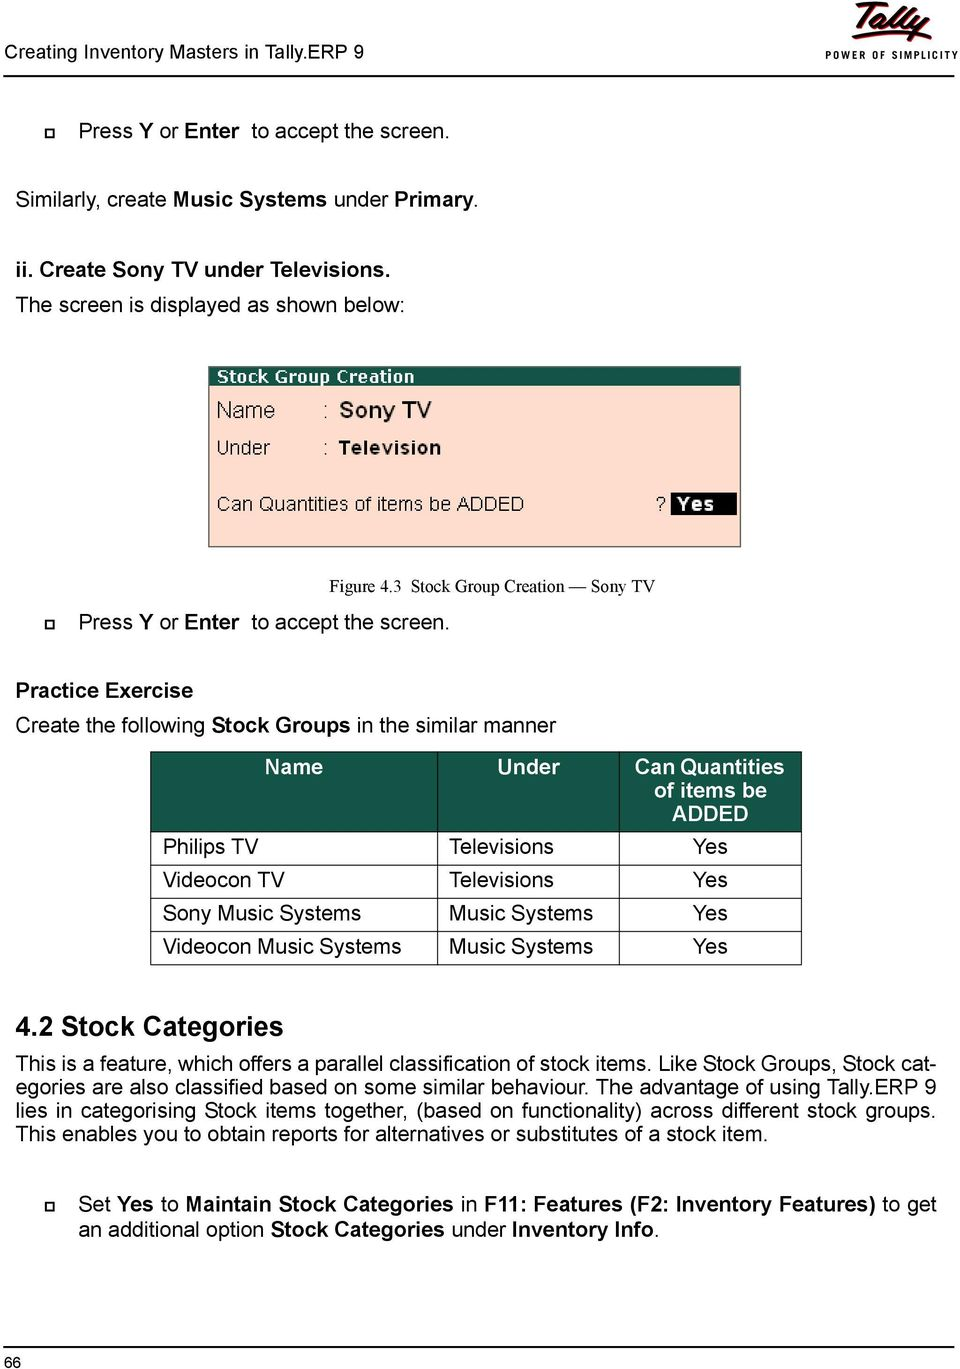 Lesson 4: Creating Inventory Masters in Tally ERP 9 - PDF